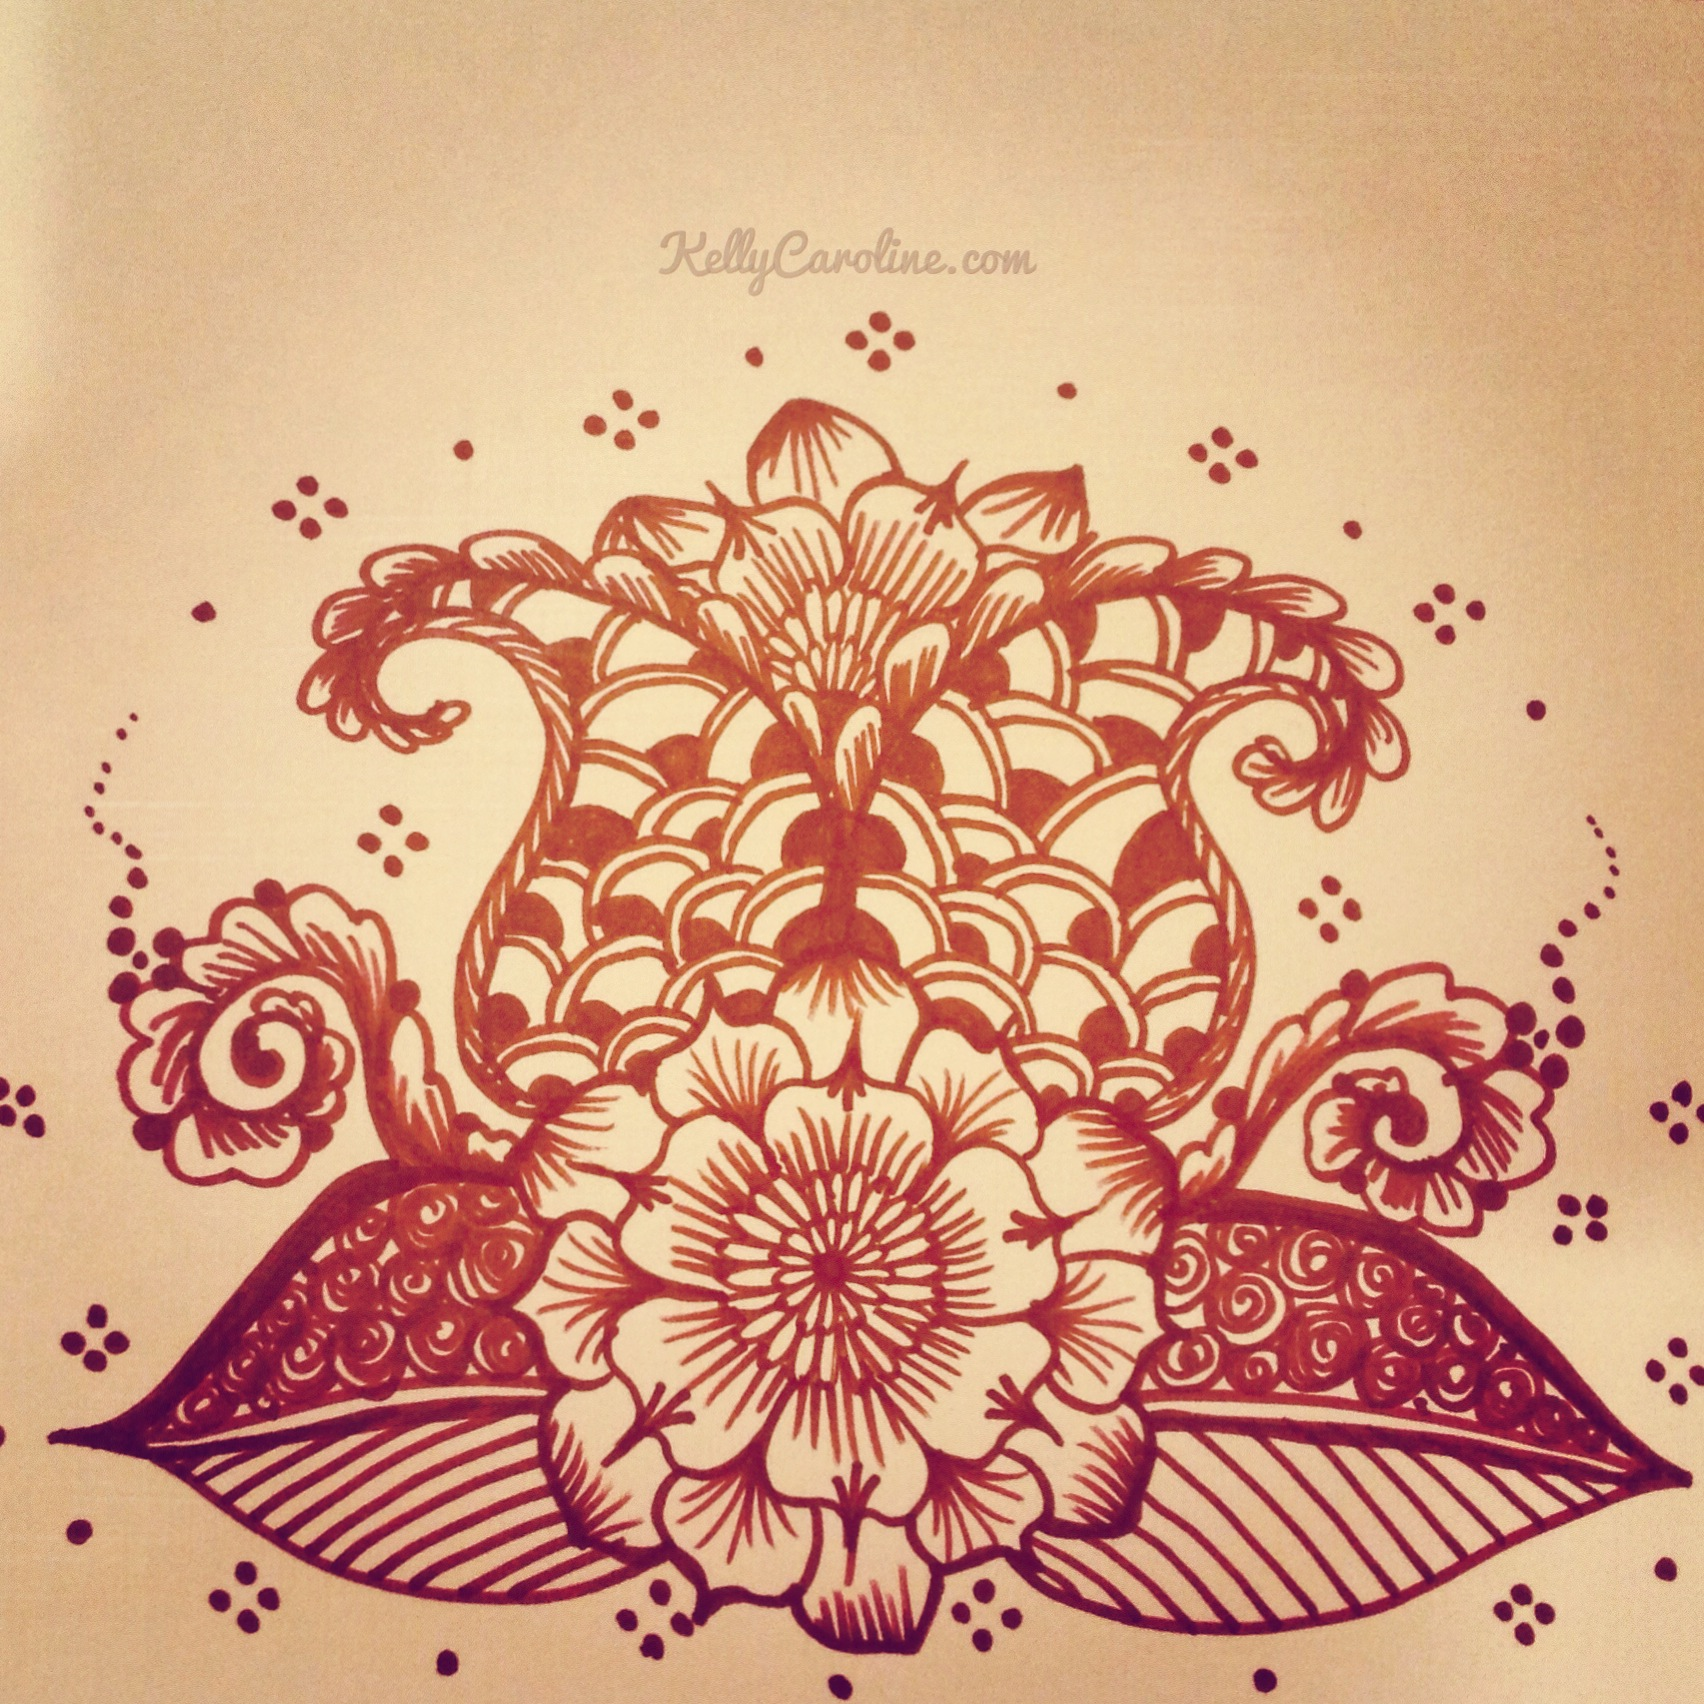 flower, henna drawing, art, floral, kelly caroline, henna michigan, henna artist, flower henna, drawing